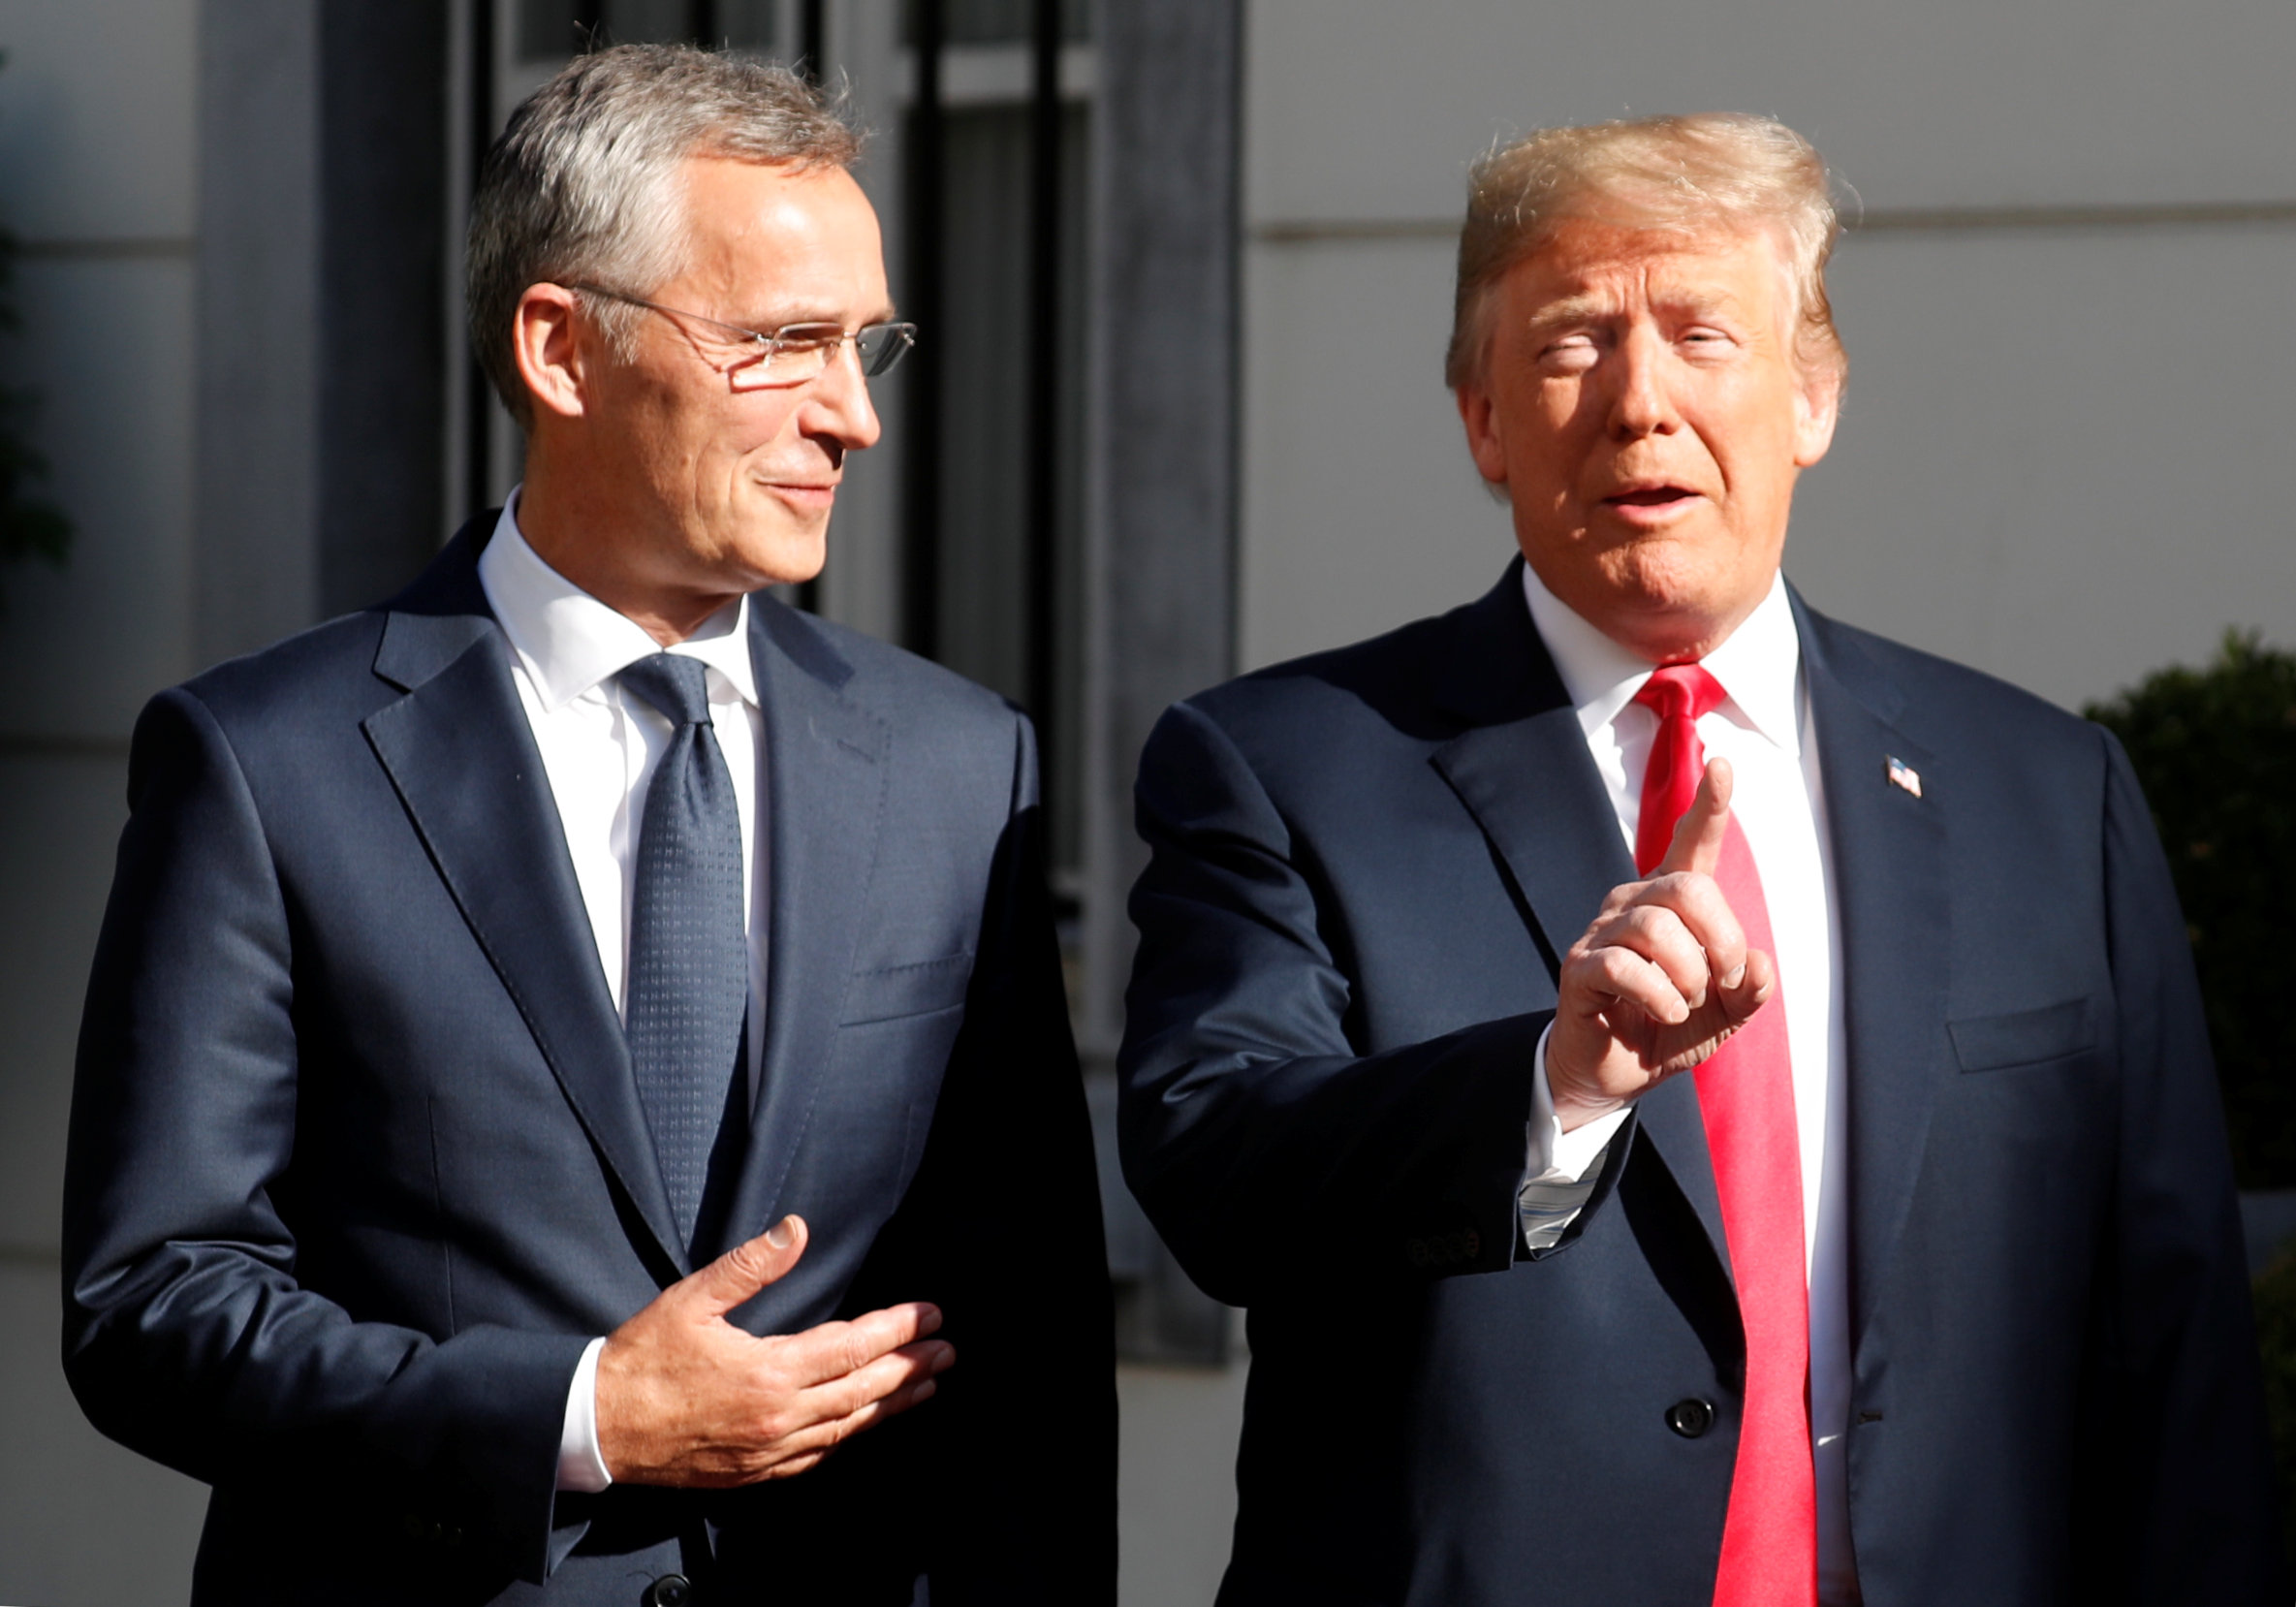 2018 07 11T071655Z 1580537974 RC1B61947A10 RTRMADP 3 NATO SUMMIT